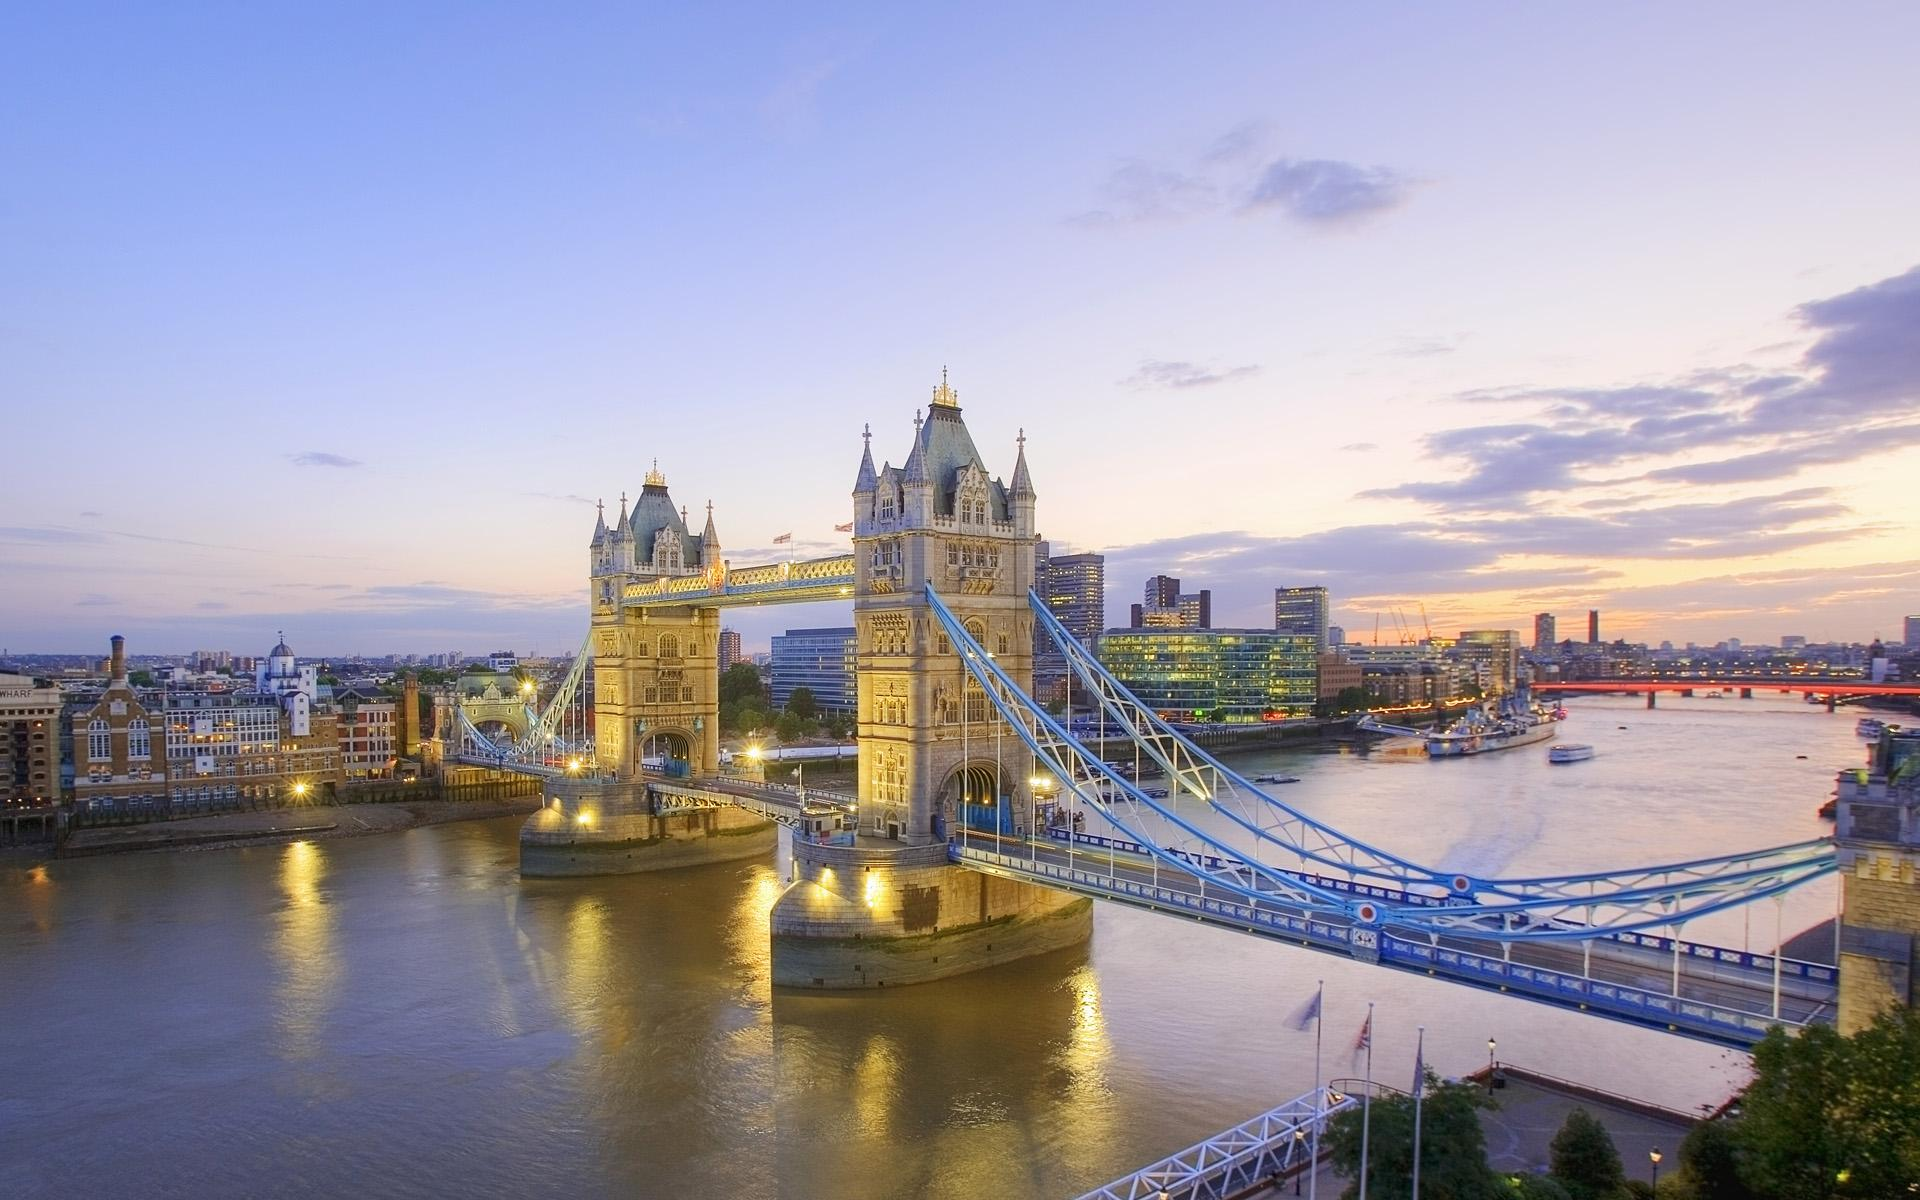 River Thames and Tower Bridge at Dusk Wallpaper - HD Wallpapers